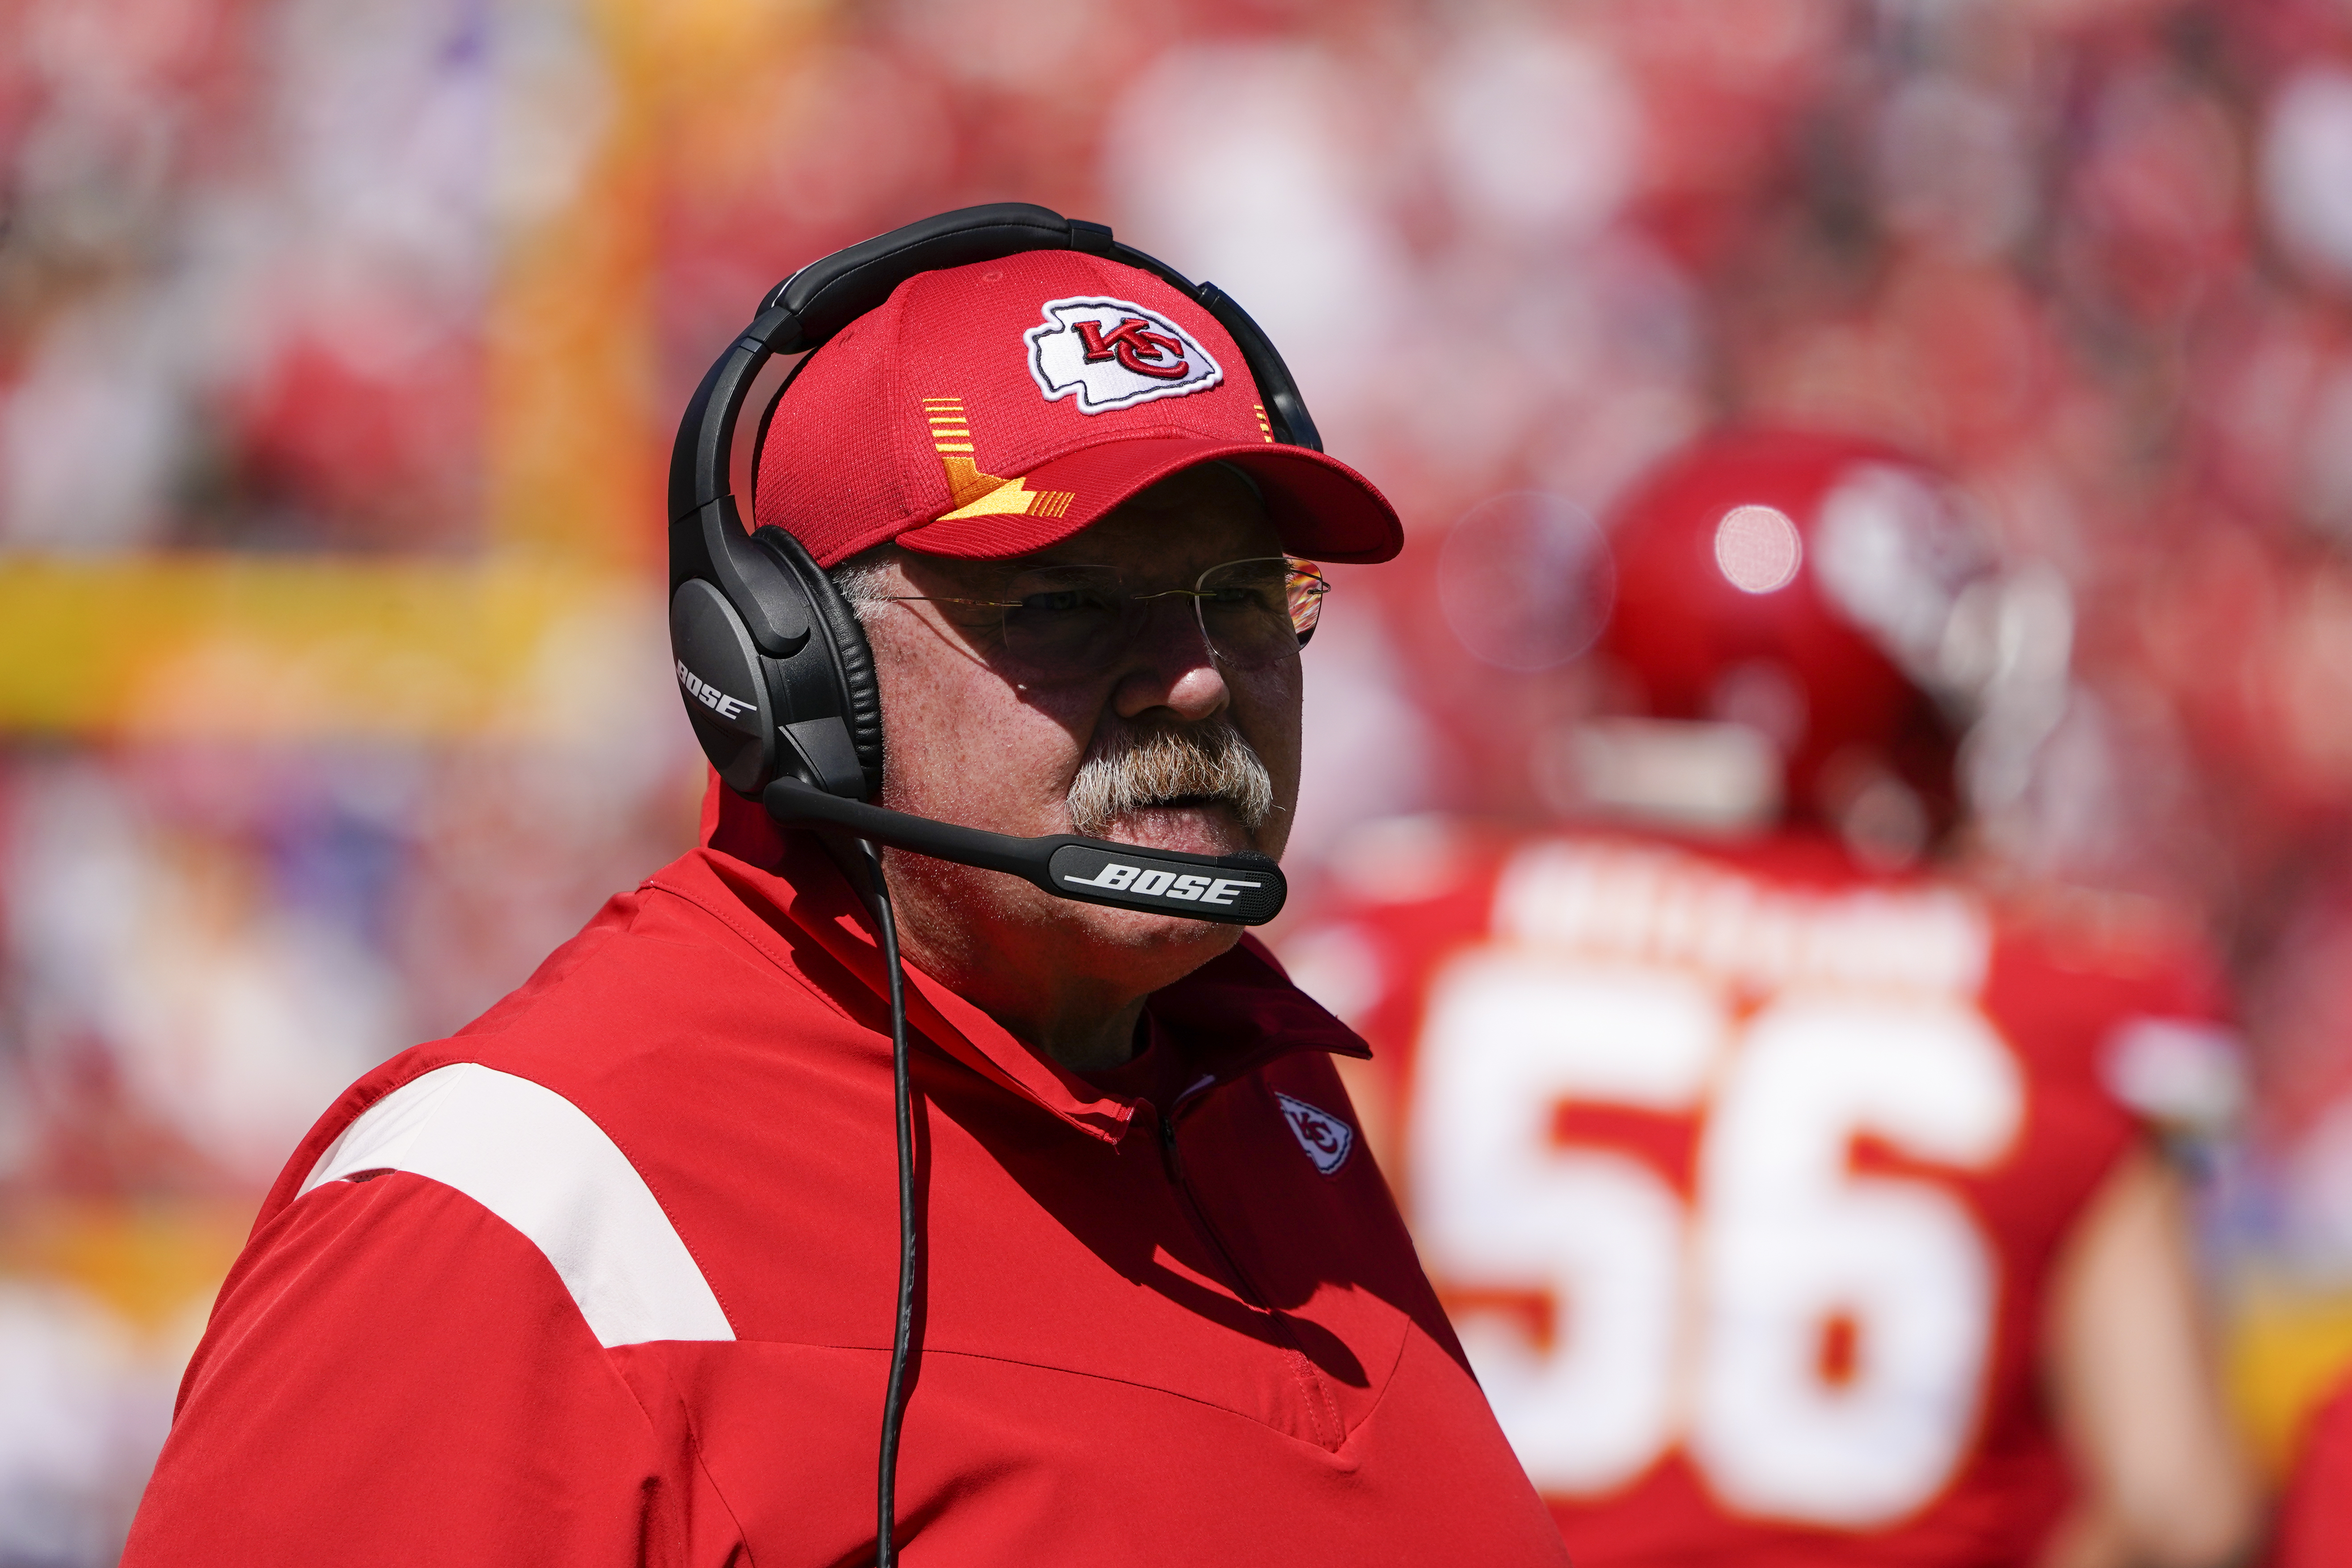 Chiefs coach Andy Reid is resting and in stable condition after being taken to a hospital following Kansas City's 30-24 loss to the Los Angeles Chargers on Sunday.